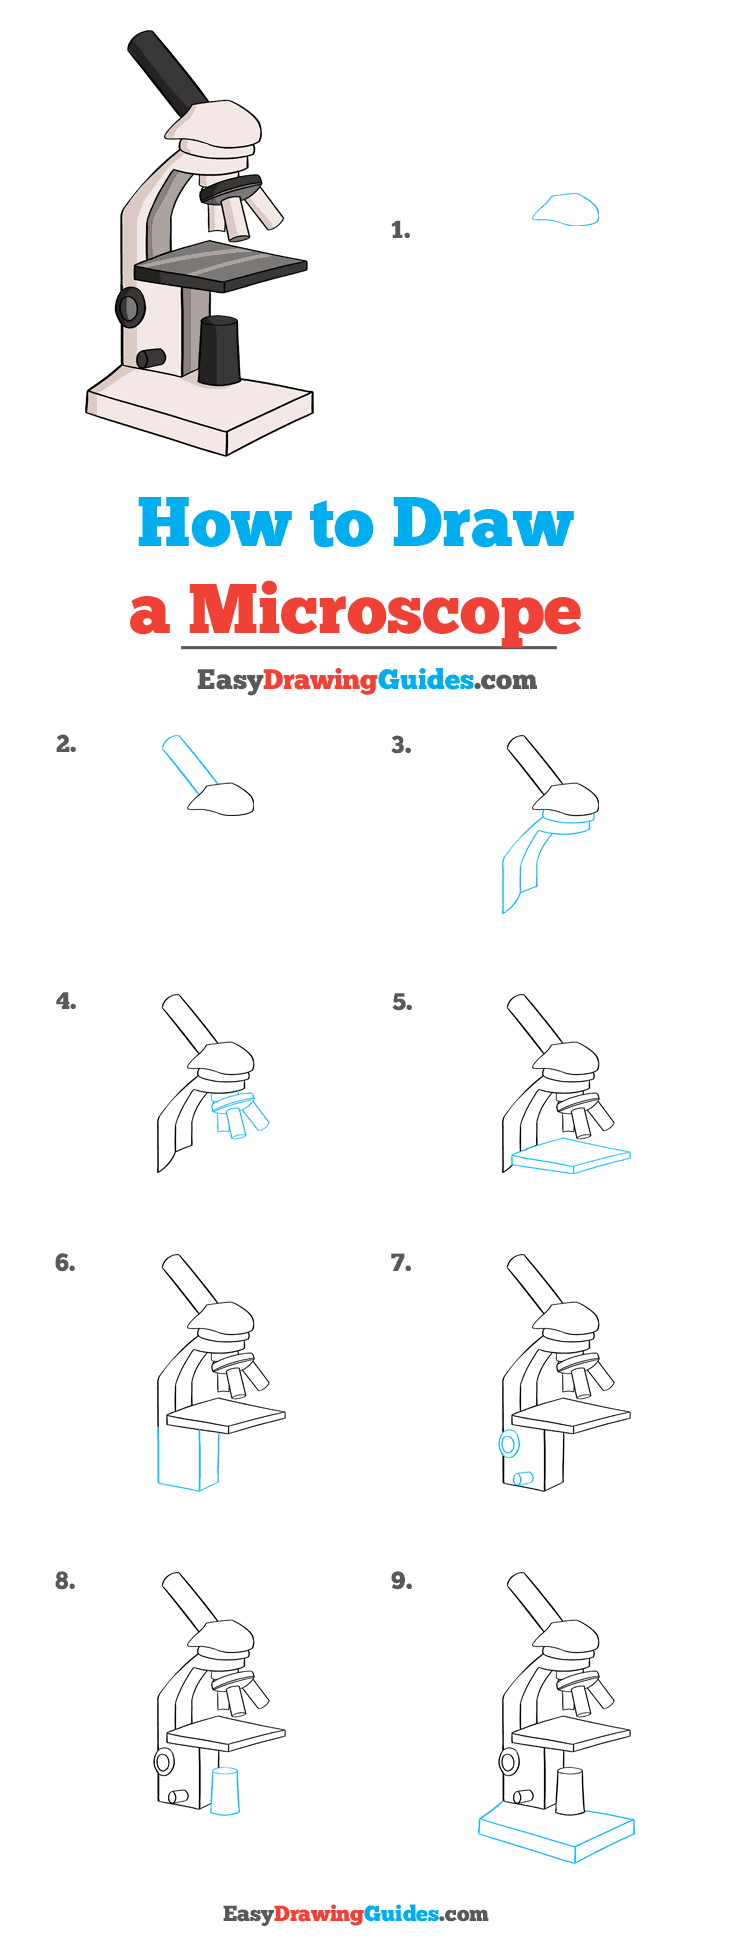 How to Draw Microscope